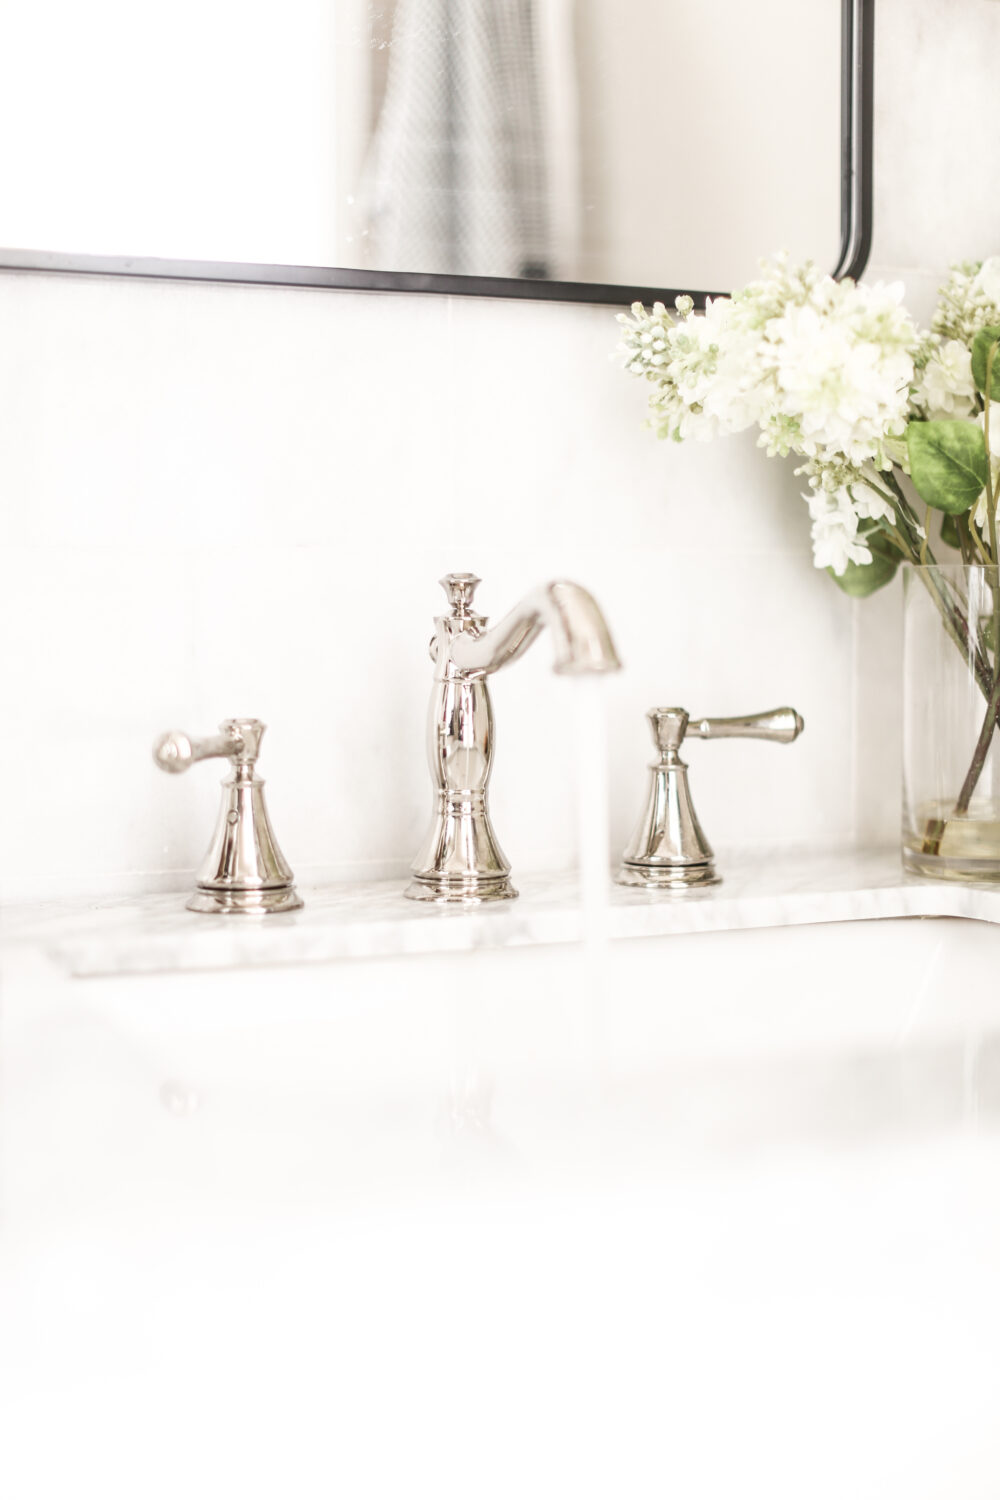 A Classic and Elegant Delta Bathroom Faucet